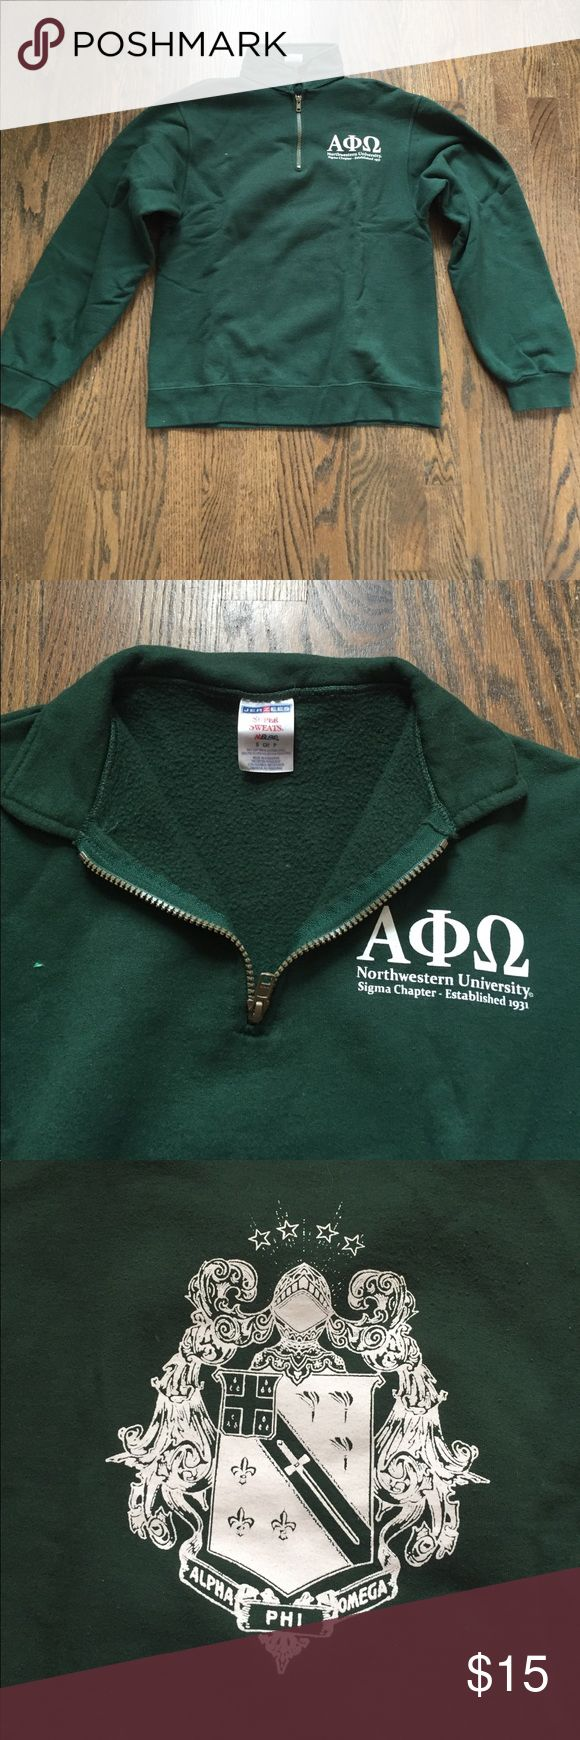 Alpha Phi Omega Quarter Zip Forest green. Jerzees Super Sweats. Greek letters on front and crest on back. Northwestern Sigma chapter. Jackets & Coats